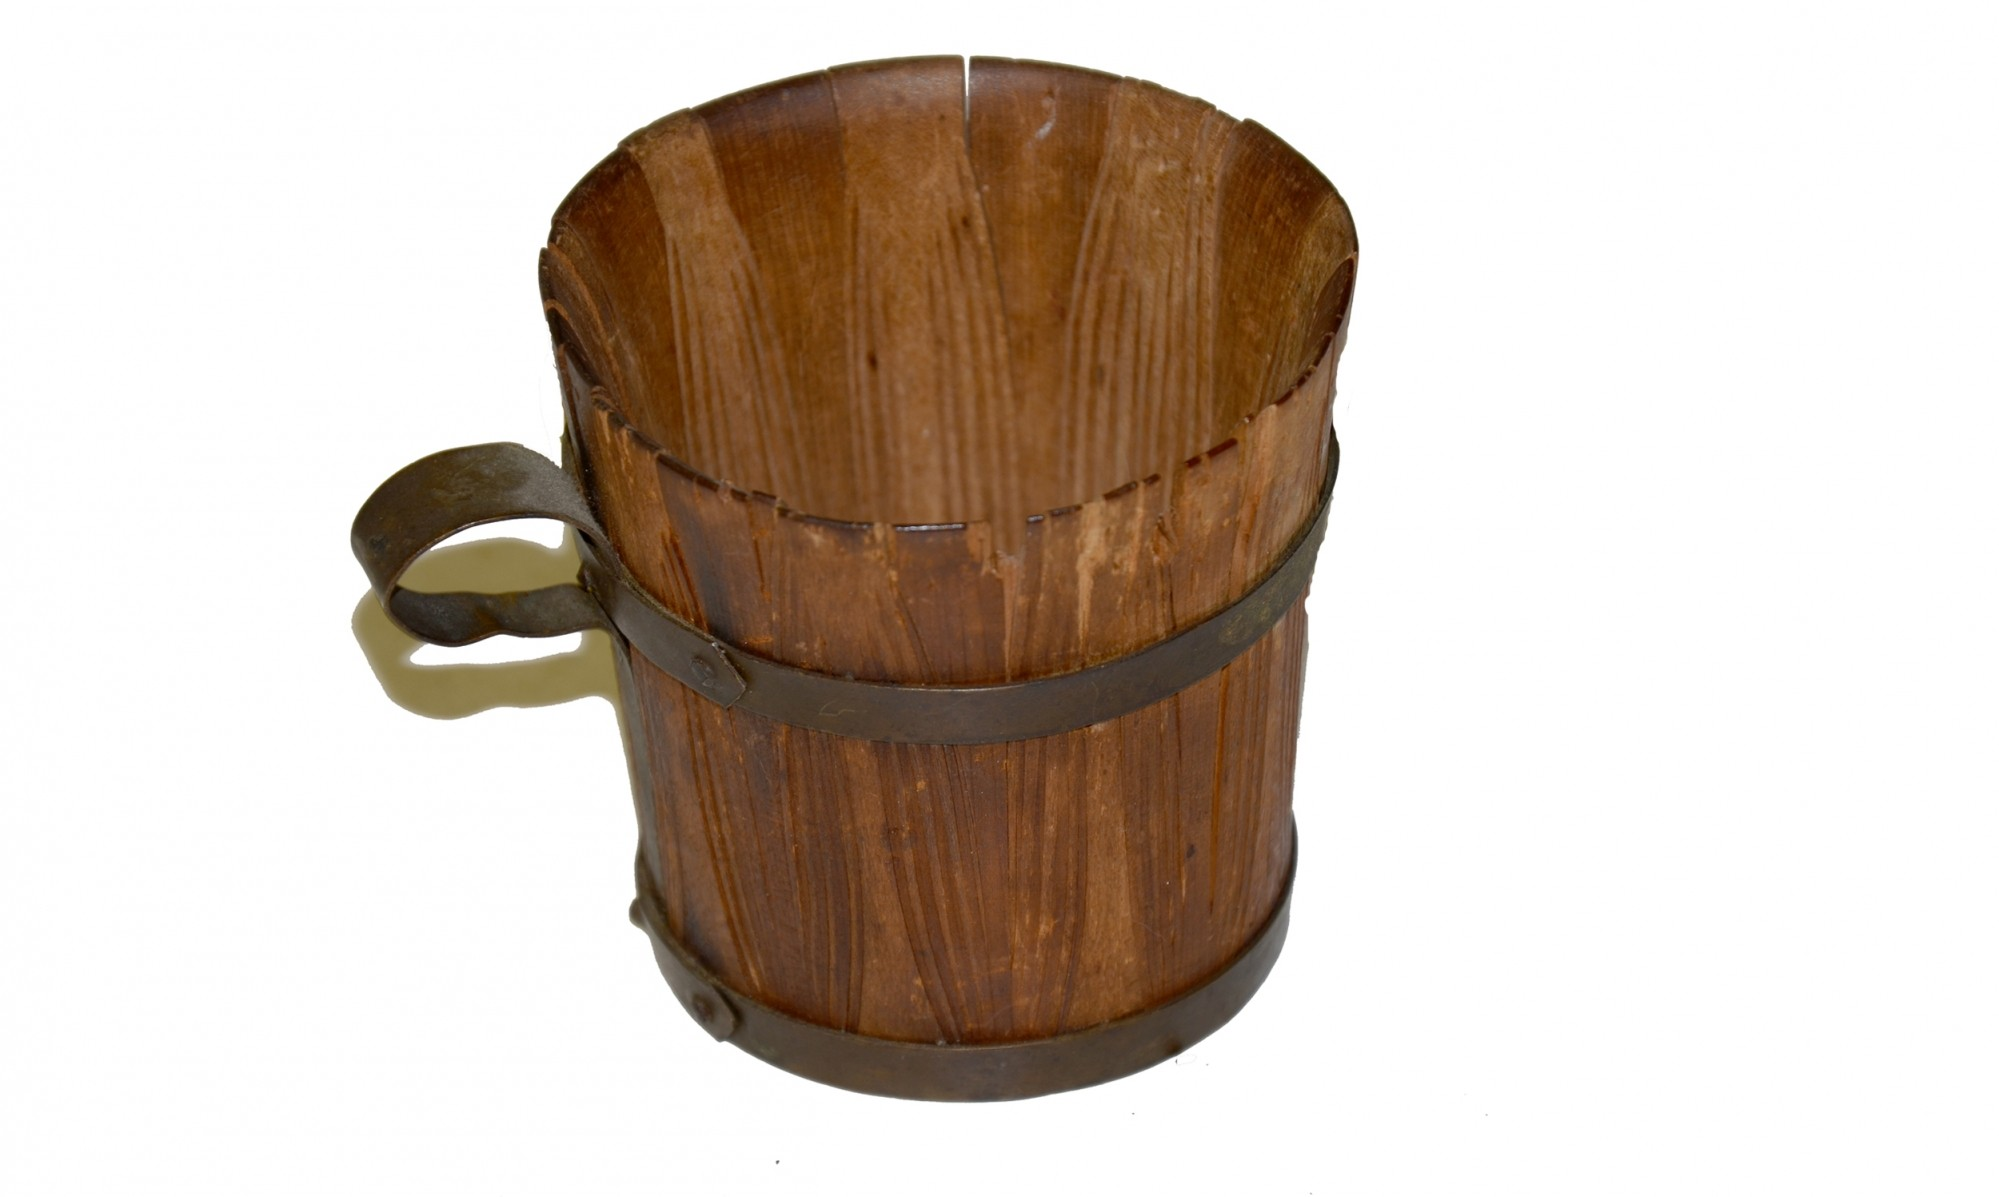 CONFEDERATE POW ART, WOODEN CUP, NASHVILLE, 1862